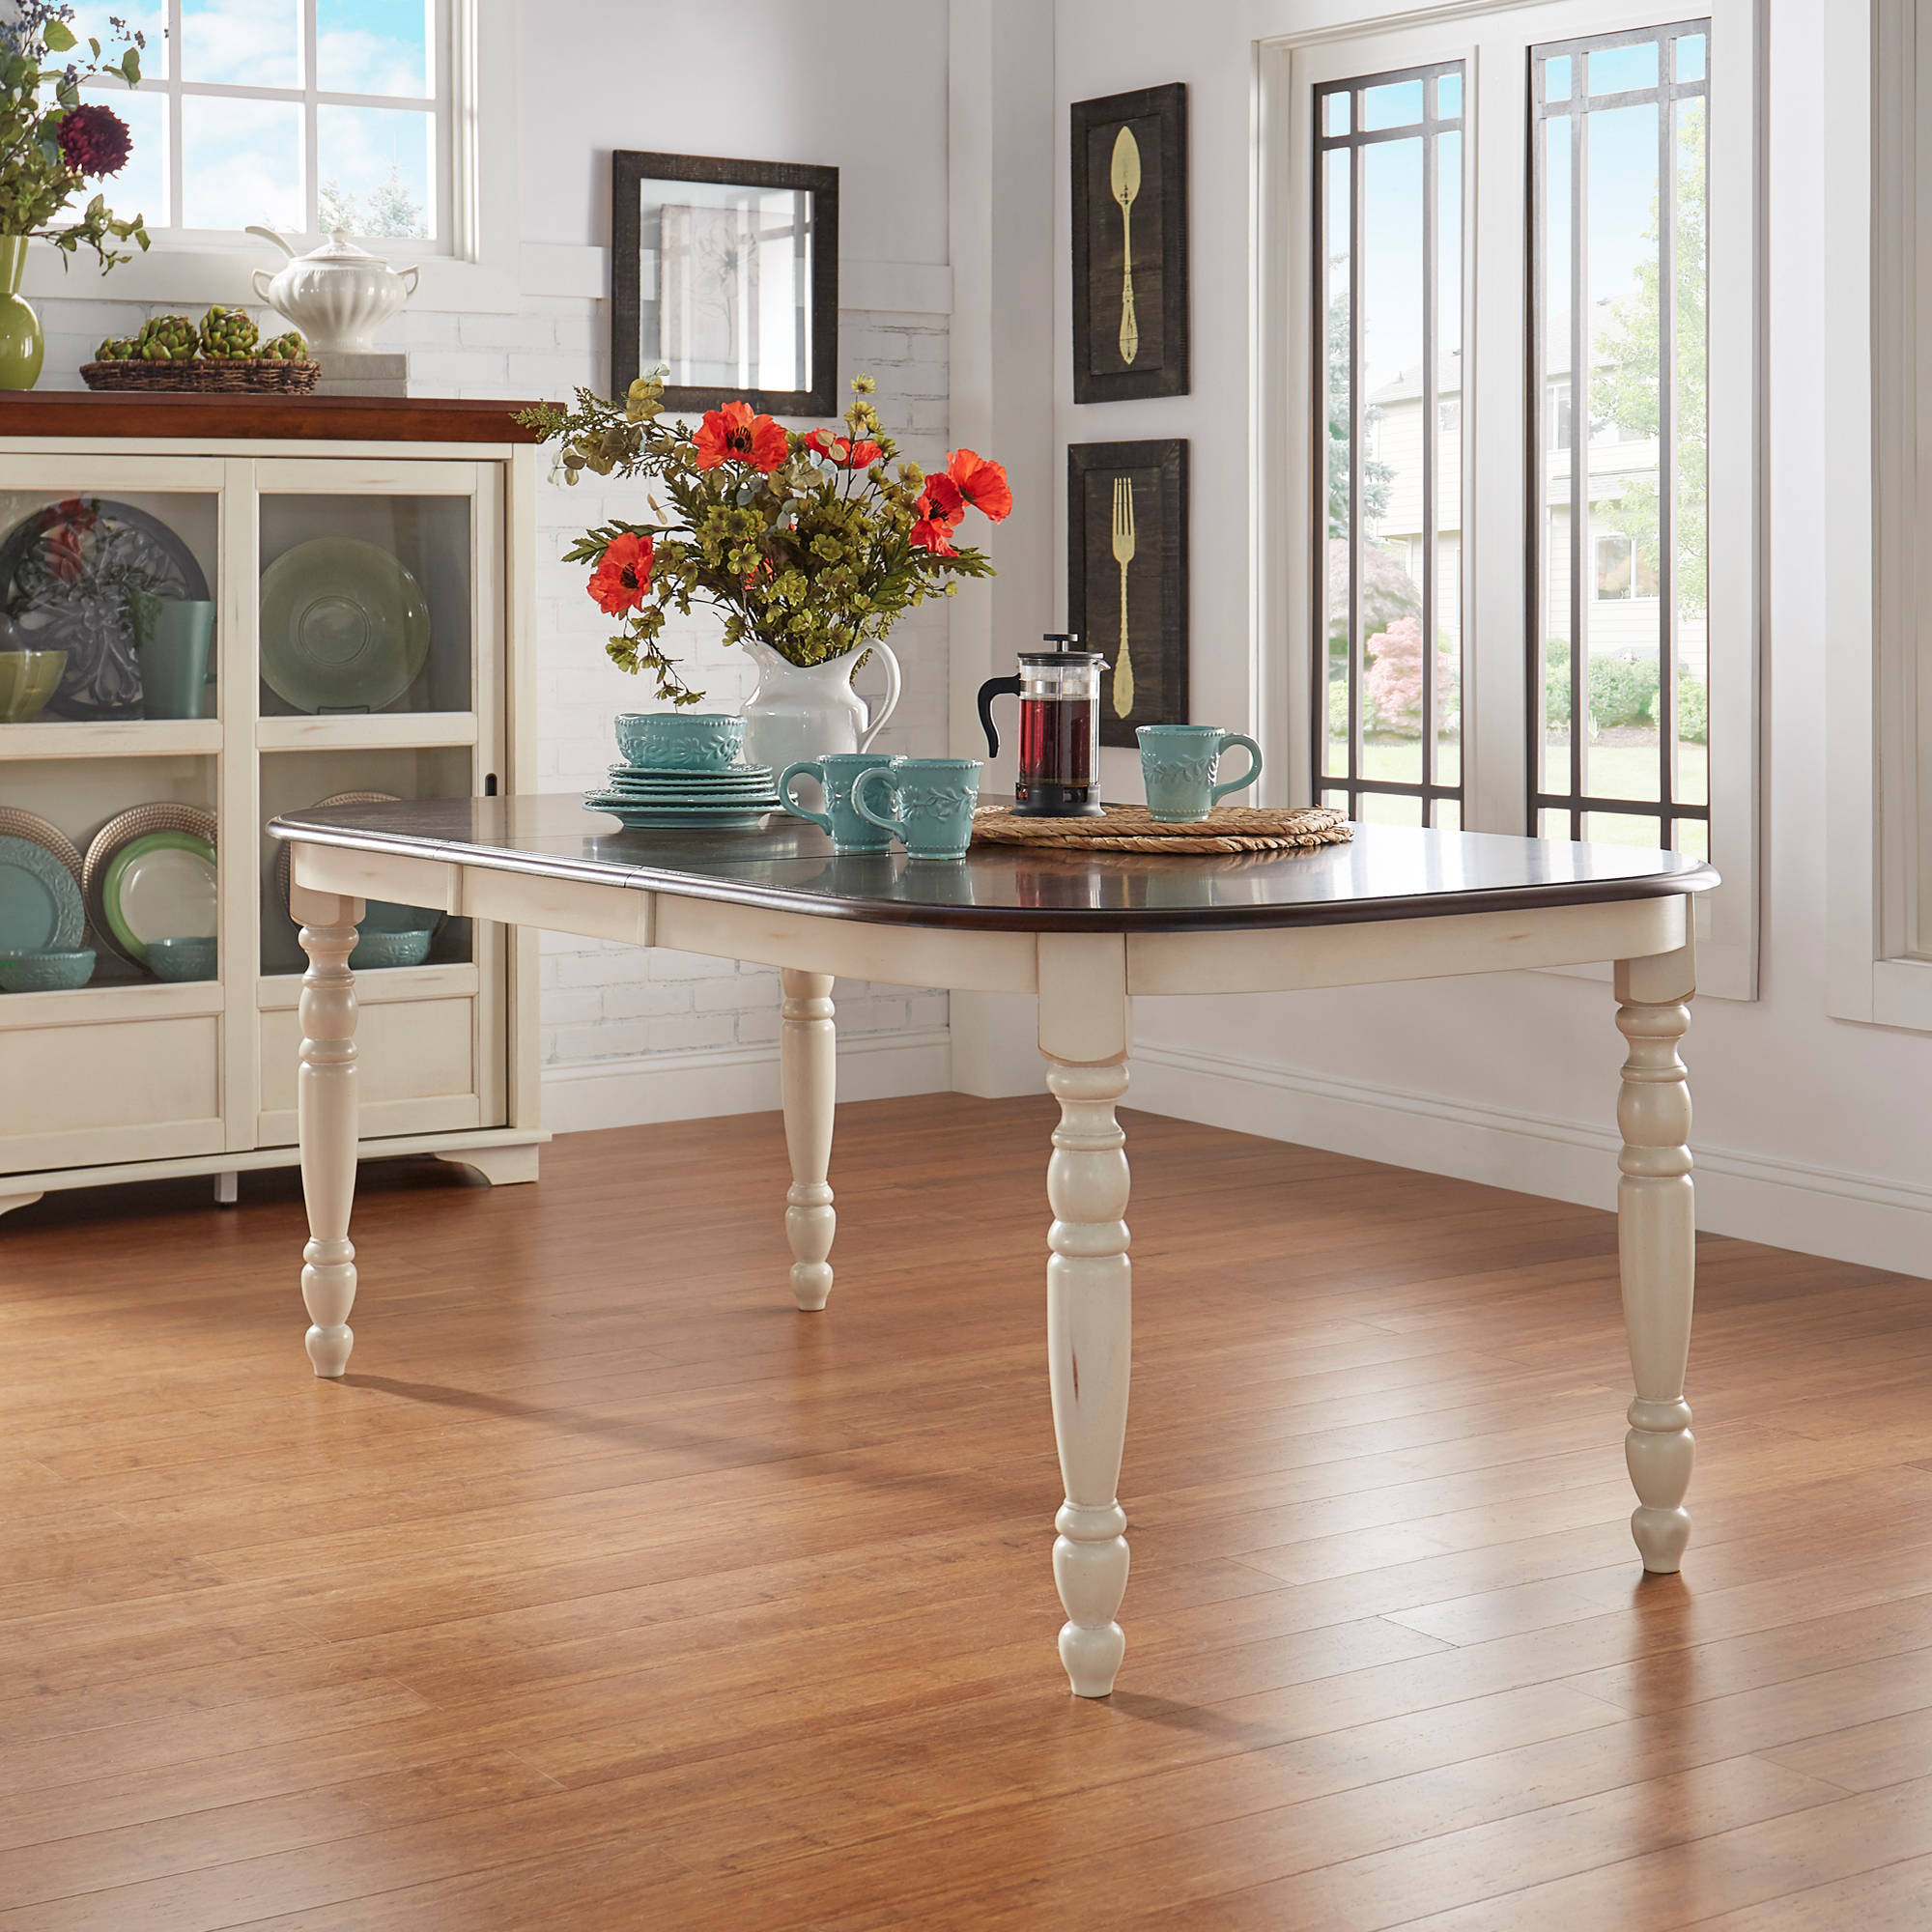 Weston Home Two Tone Dining Table, Antique White & Warm Cherry